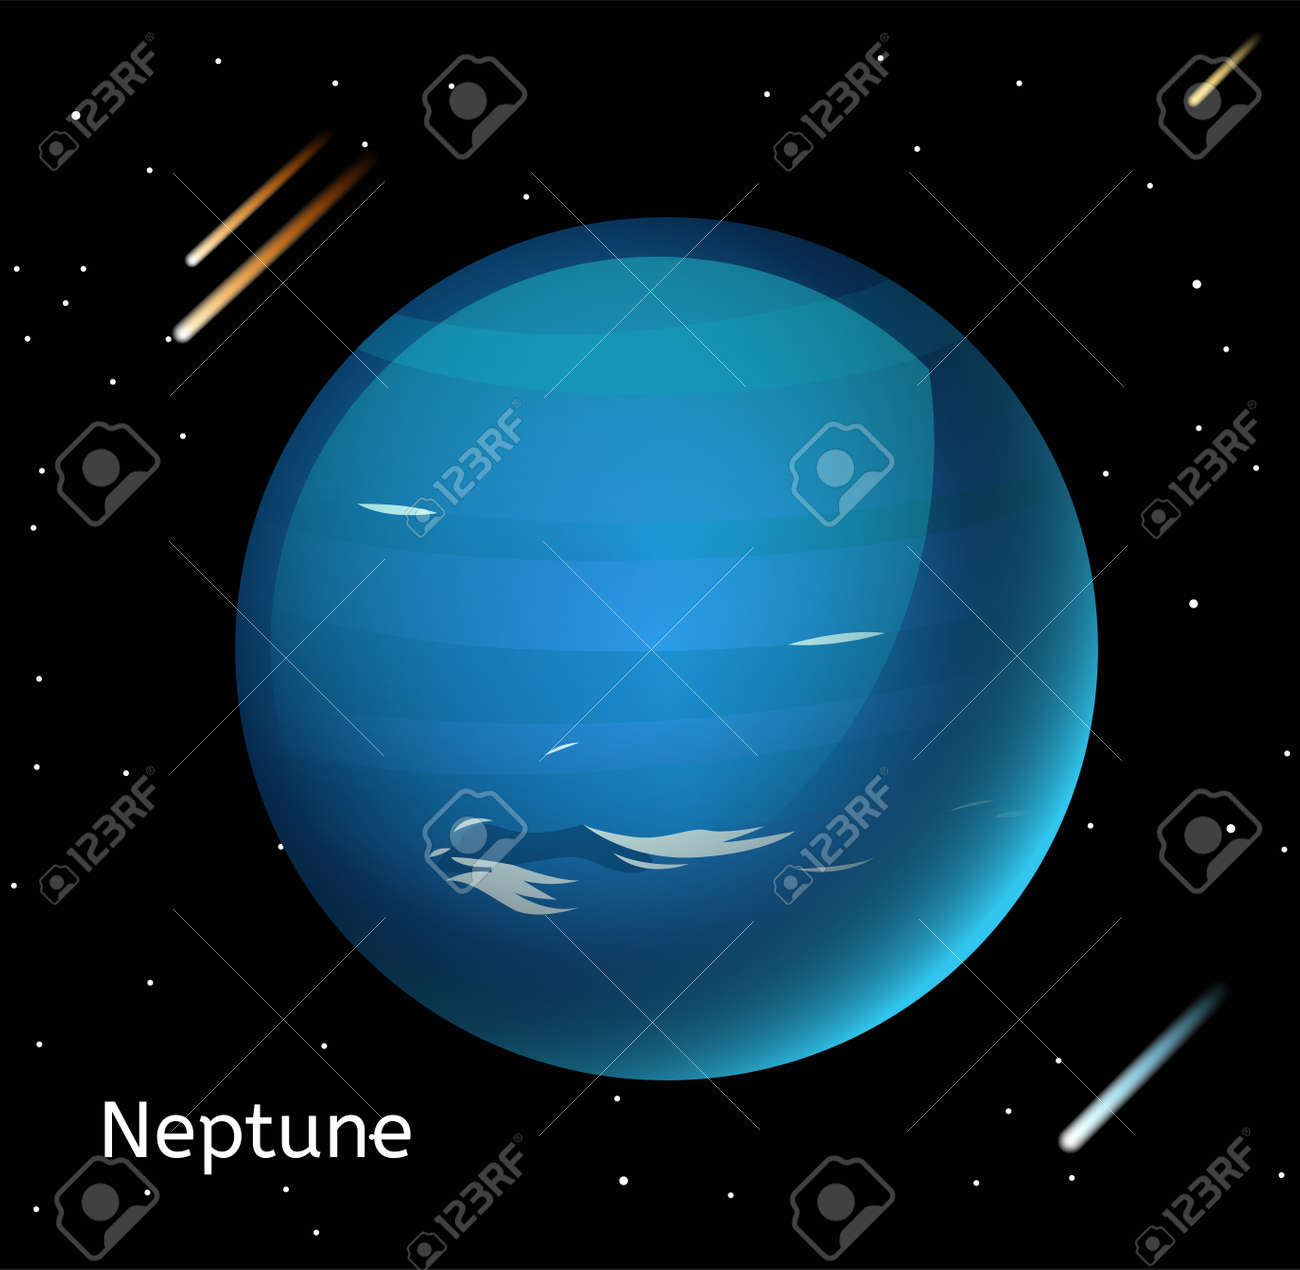 Neptune planet 3d vector illustration globe neptune texture map neptune planet 3d vector illustration globe neptune texture map globe vector neptune view from gumiabroncs Choice Image